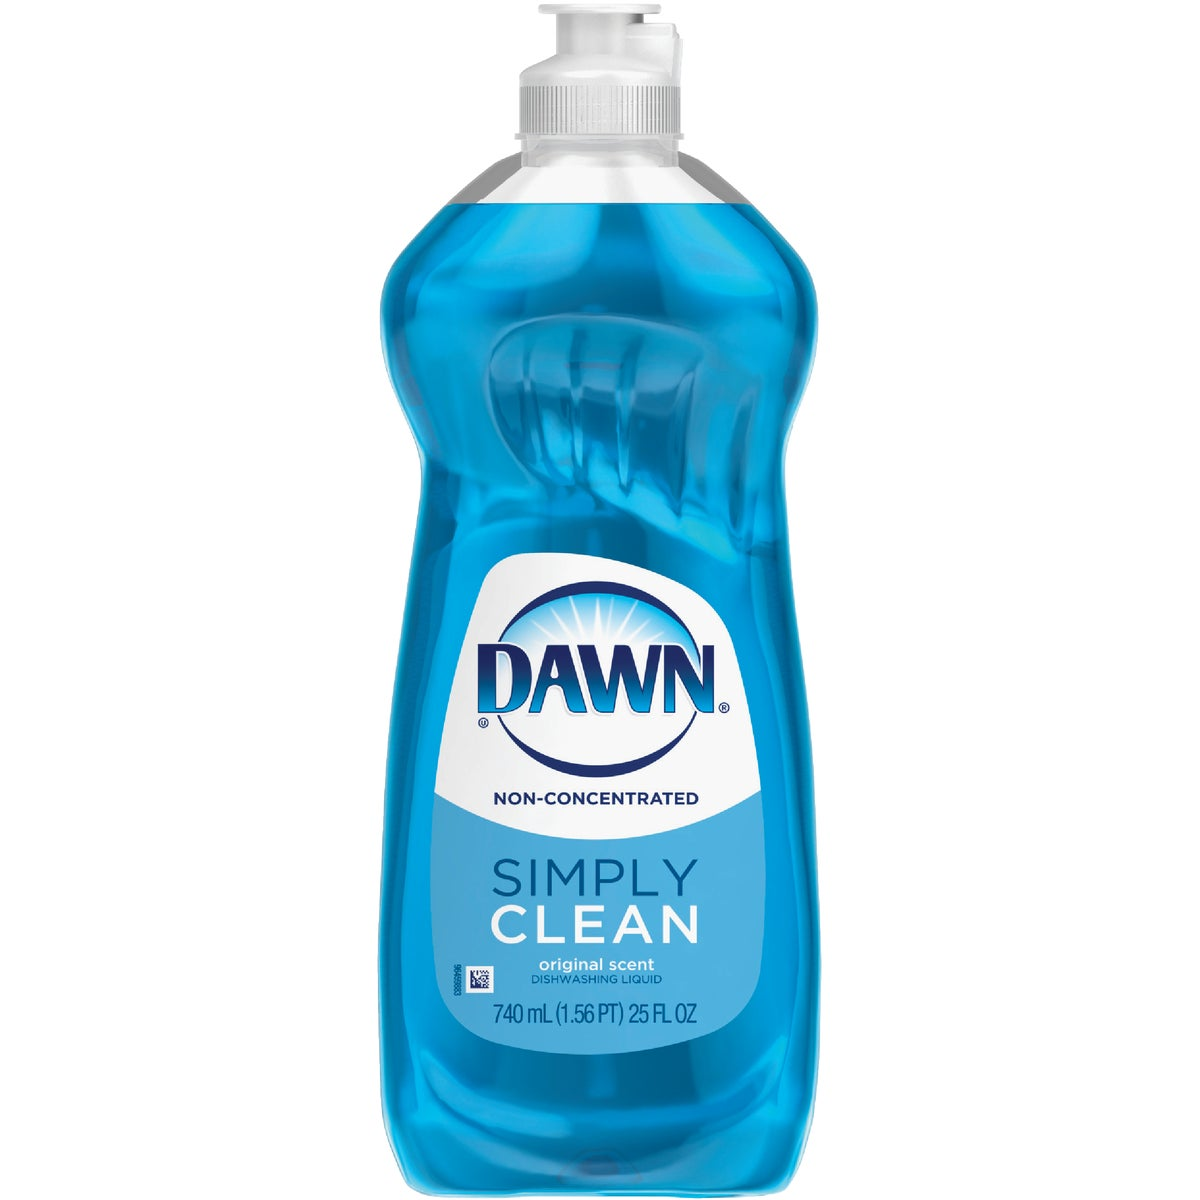 25OZ DAWN LIQ DISH SOAP - 22274 by Procter & Gamble